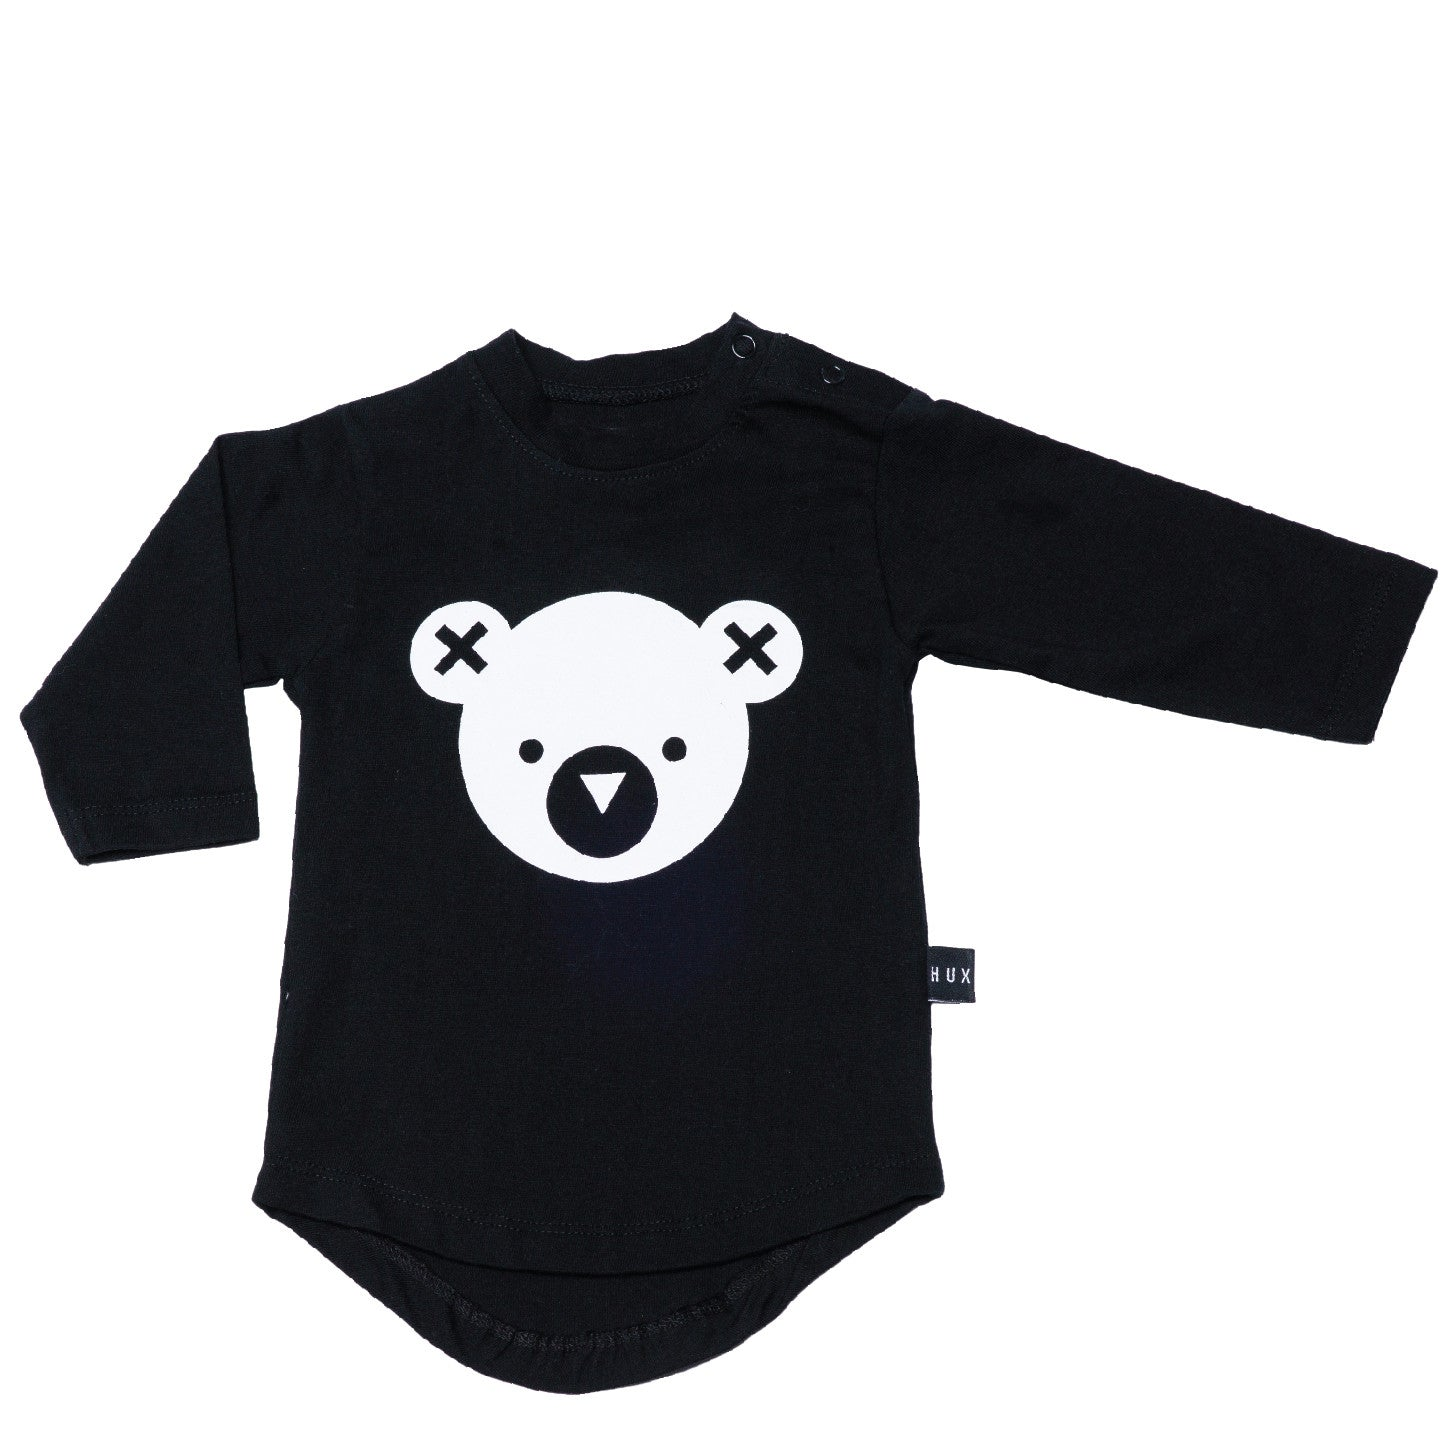 Huxbaby Bear t-shirt at Bonjour Baby Baskets